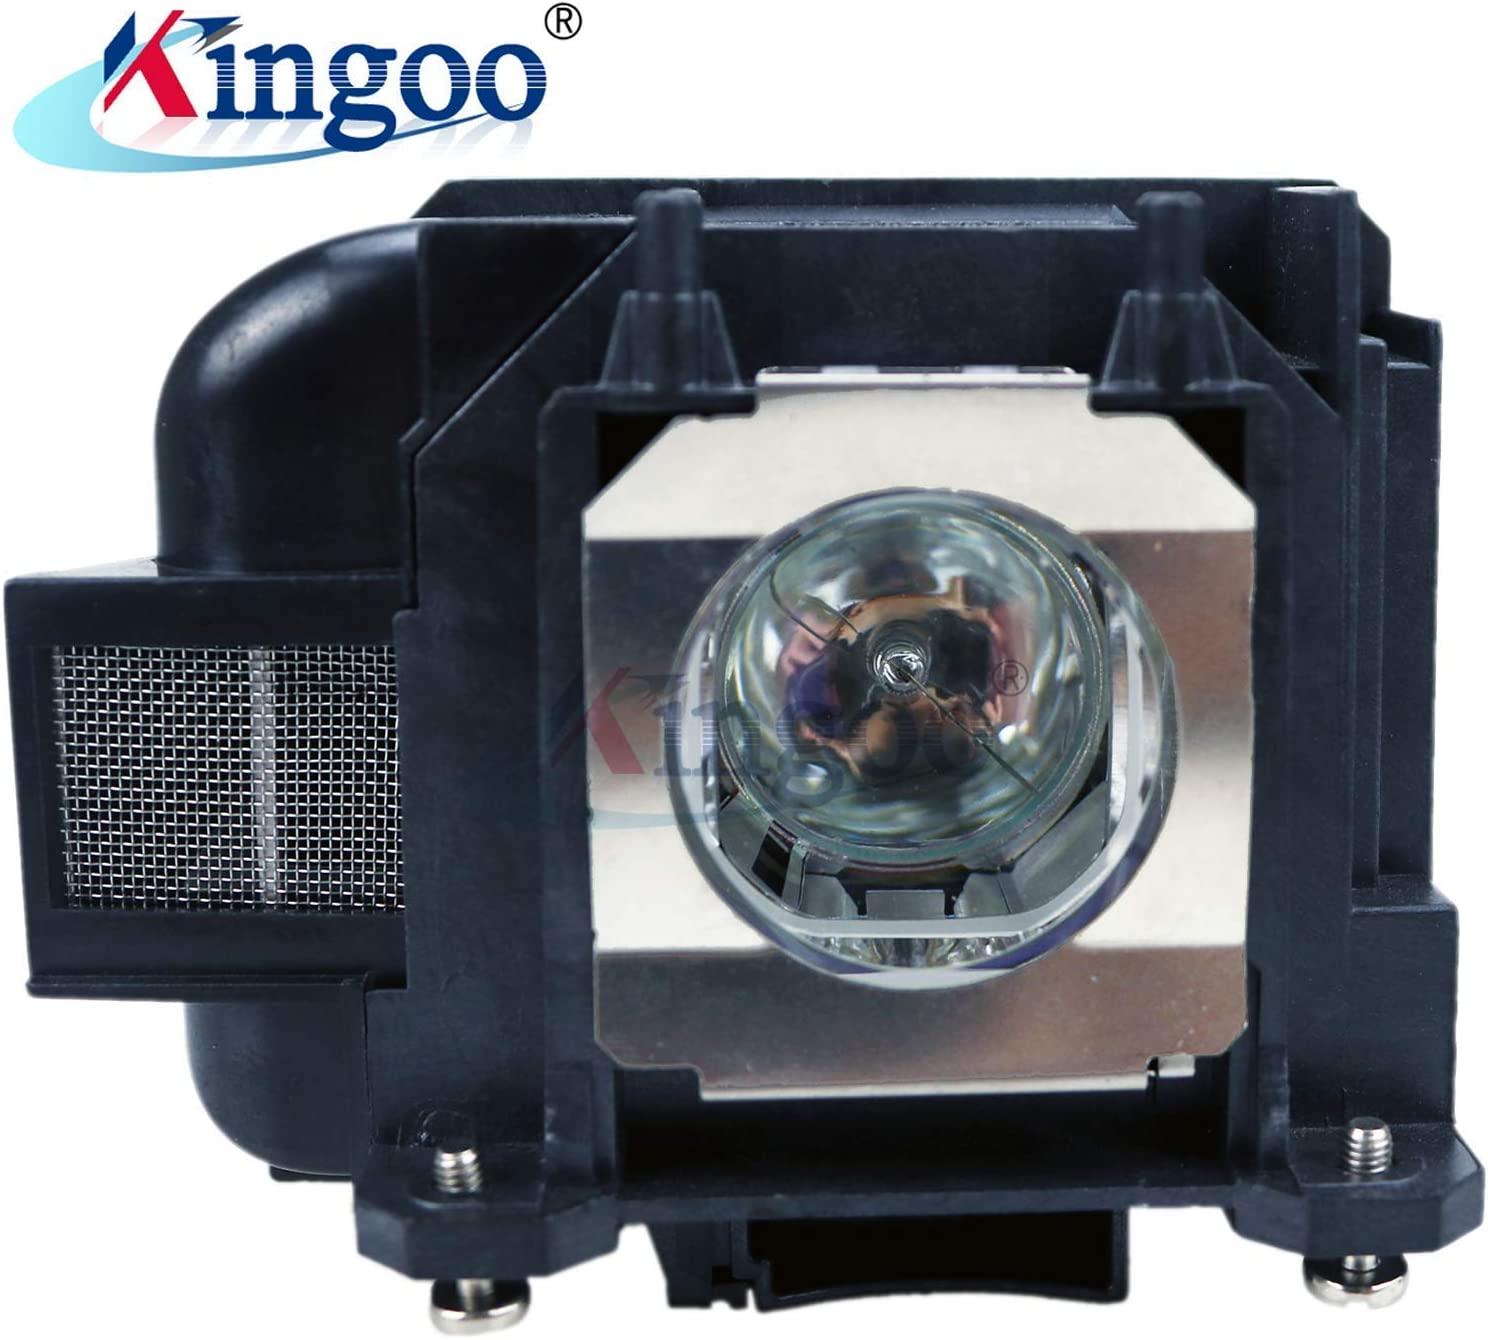 Kingoo Excellent Projector Lamp for EPSON EB-W130 EB-W29 EB-W31 EB-W32 EB-W420 EB-X04 EB-X130 EB-X27 EB-X29 EB-X300 EB-X31 EB-X350 EB-X36 EH-TW5210 EH-TW5300 Replacement Projector Lamp with Housing